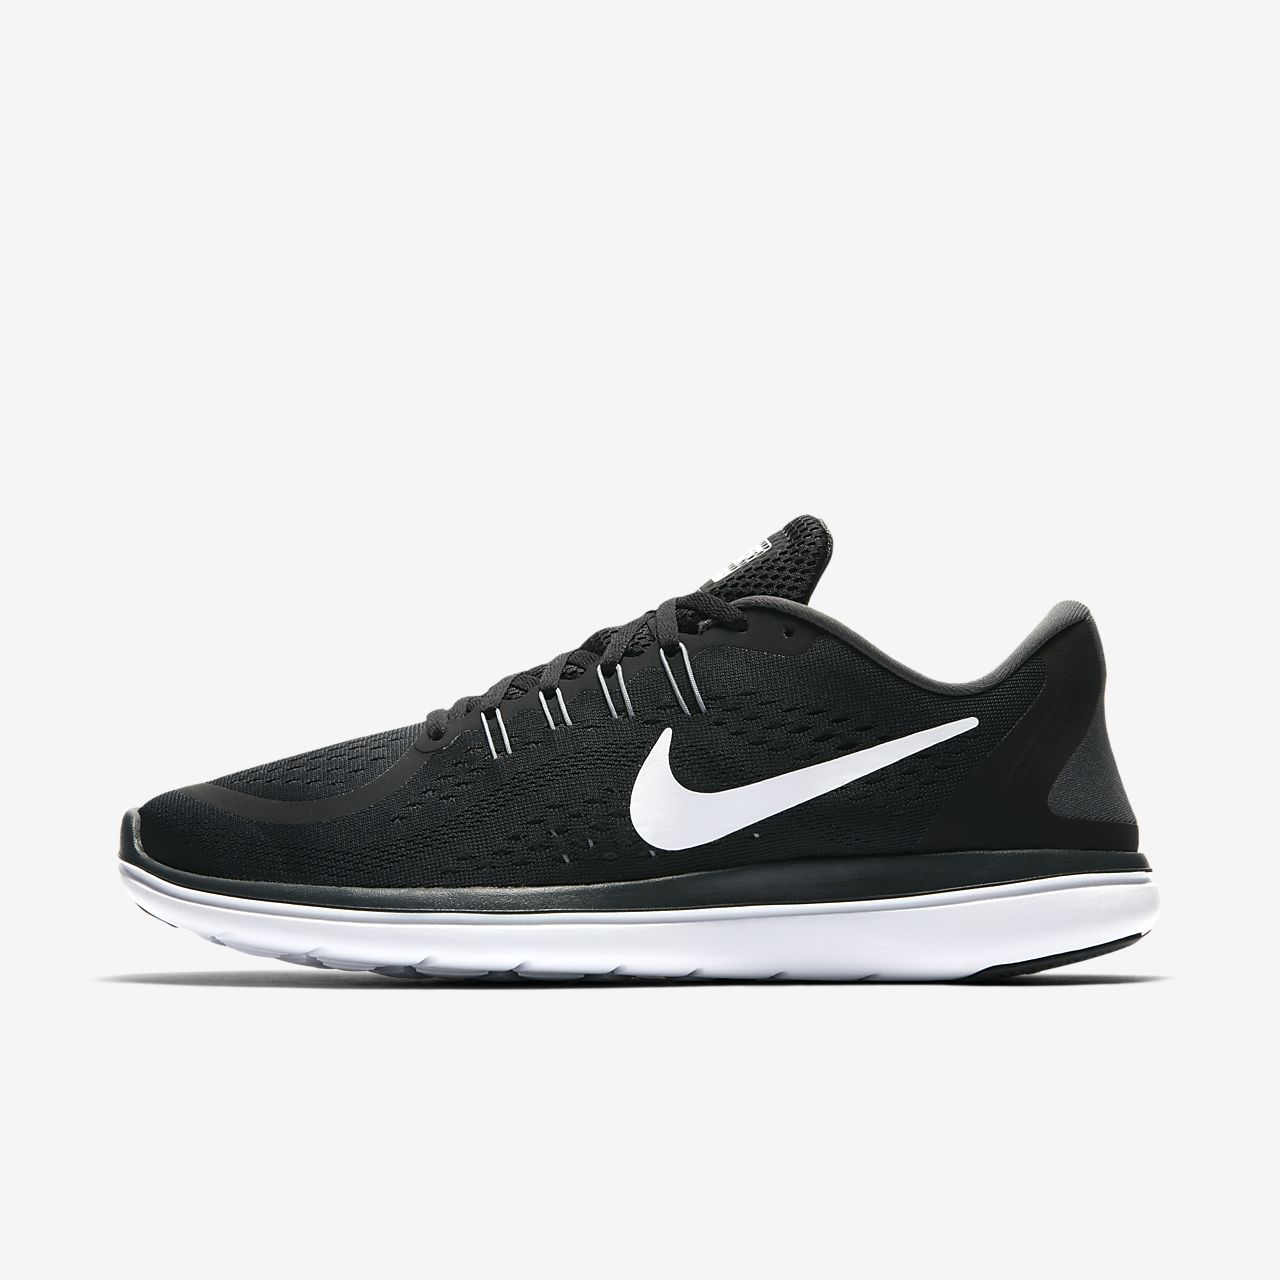 Nike runallday categoriaallenamento Uomo Scarpe sportive UK 10 US 11 EU 45 cm